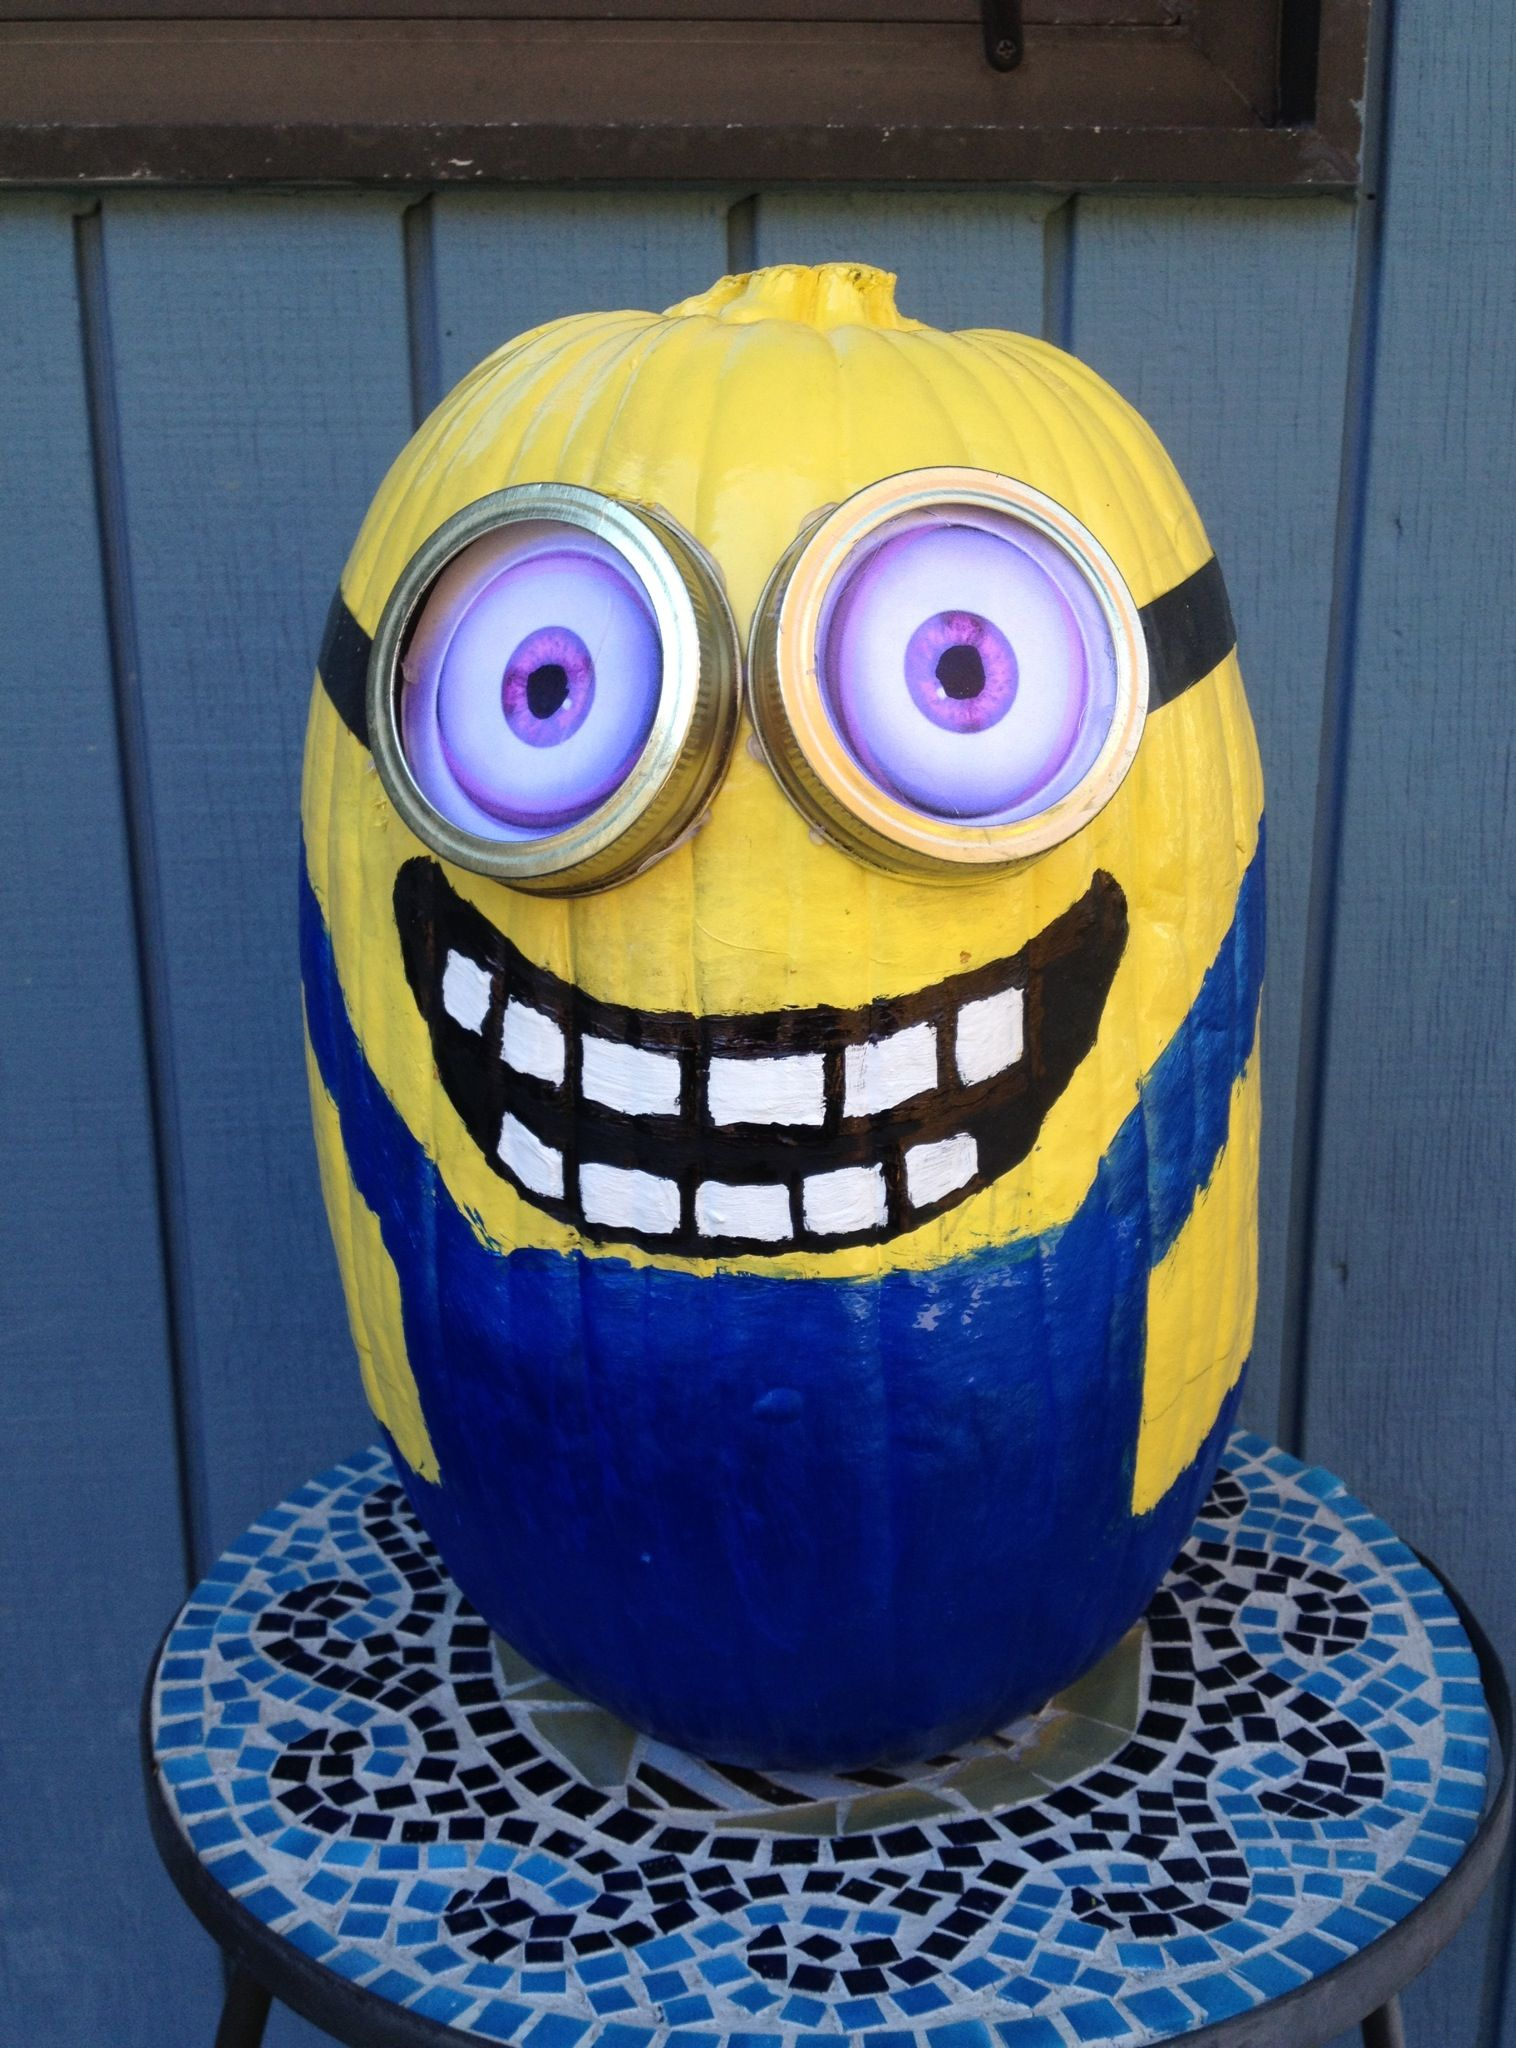 Painted Minion Pumpkins Minion Painted Pumpkin All You Need Is Some Spray Paint Paint